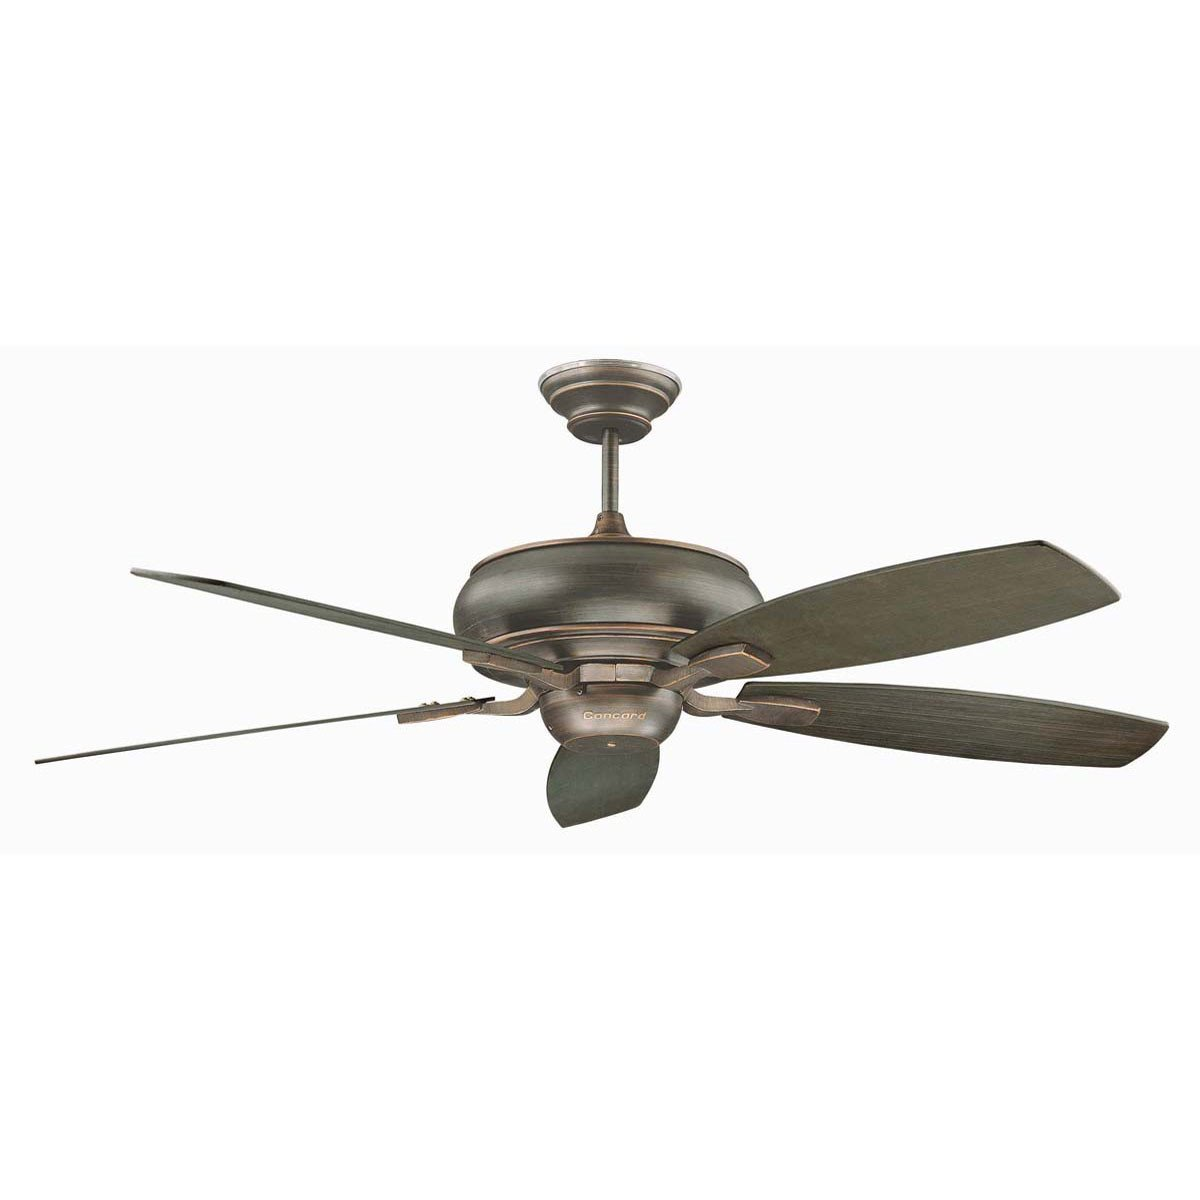 "Concord Fans Contemporary 60"" Roosevelt Oil Rubbed Bronze Large Ceiling Fan"